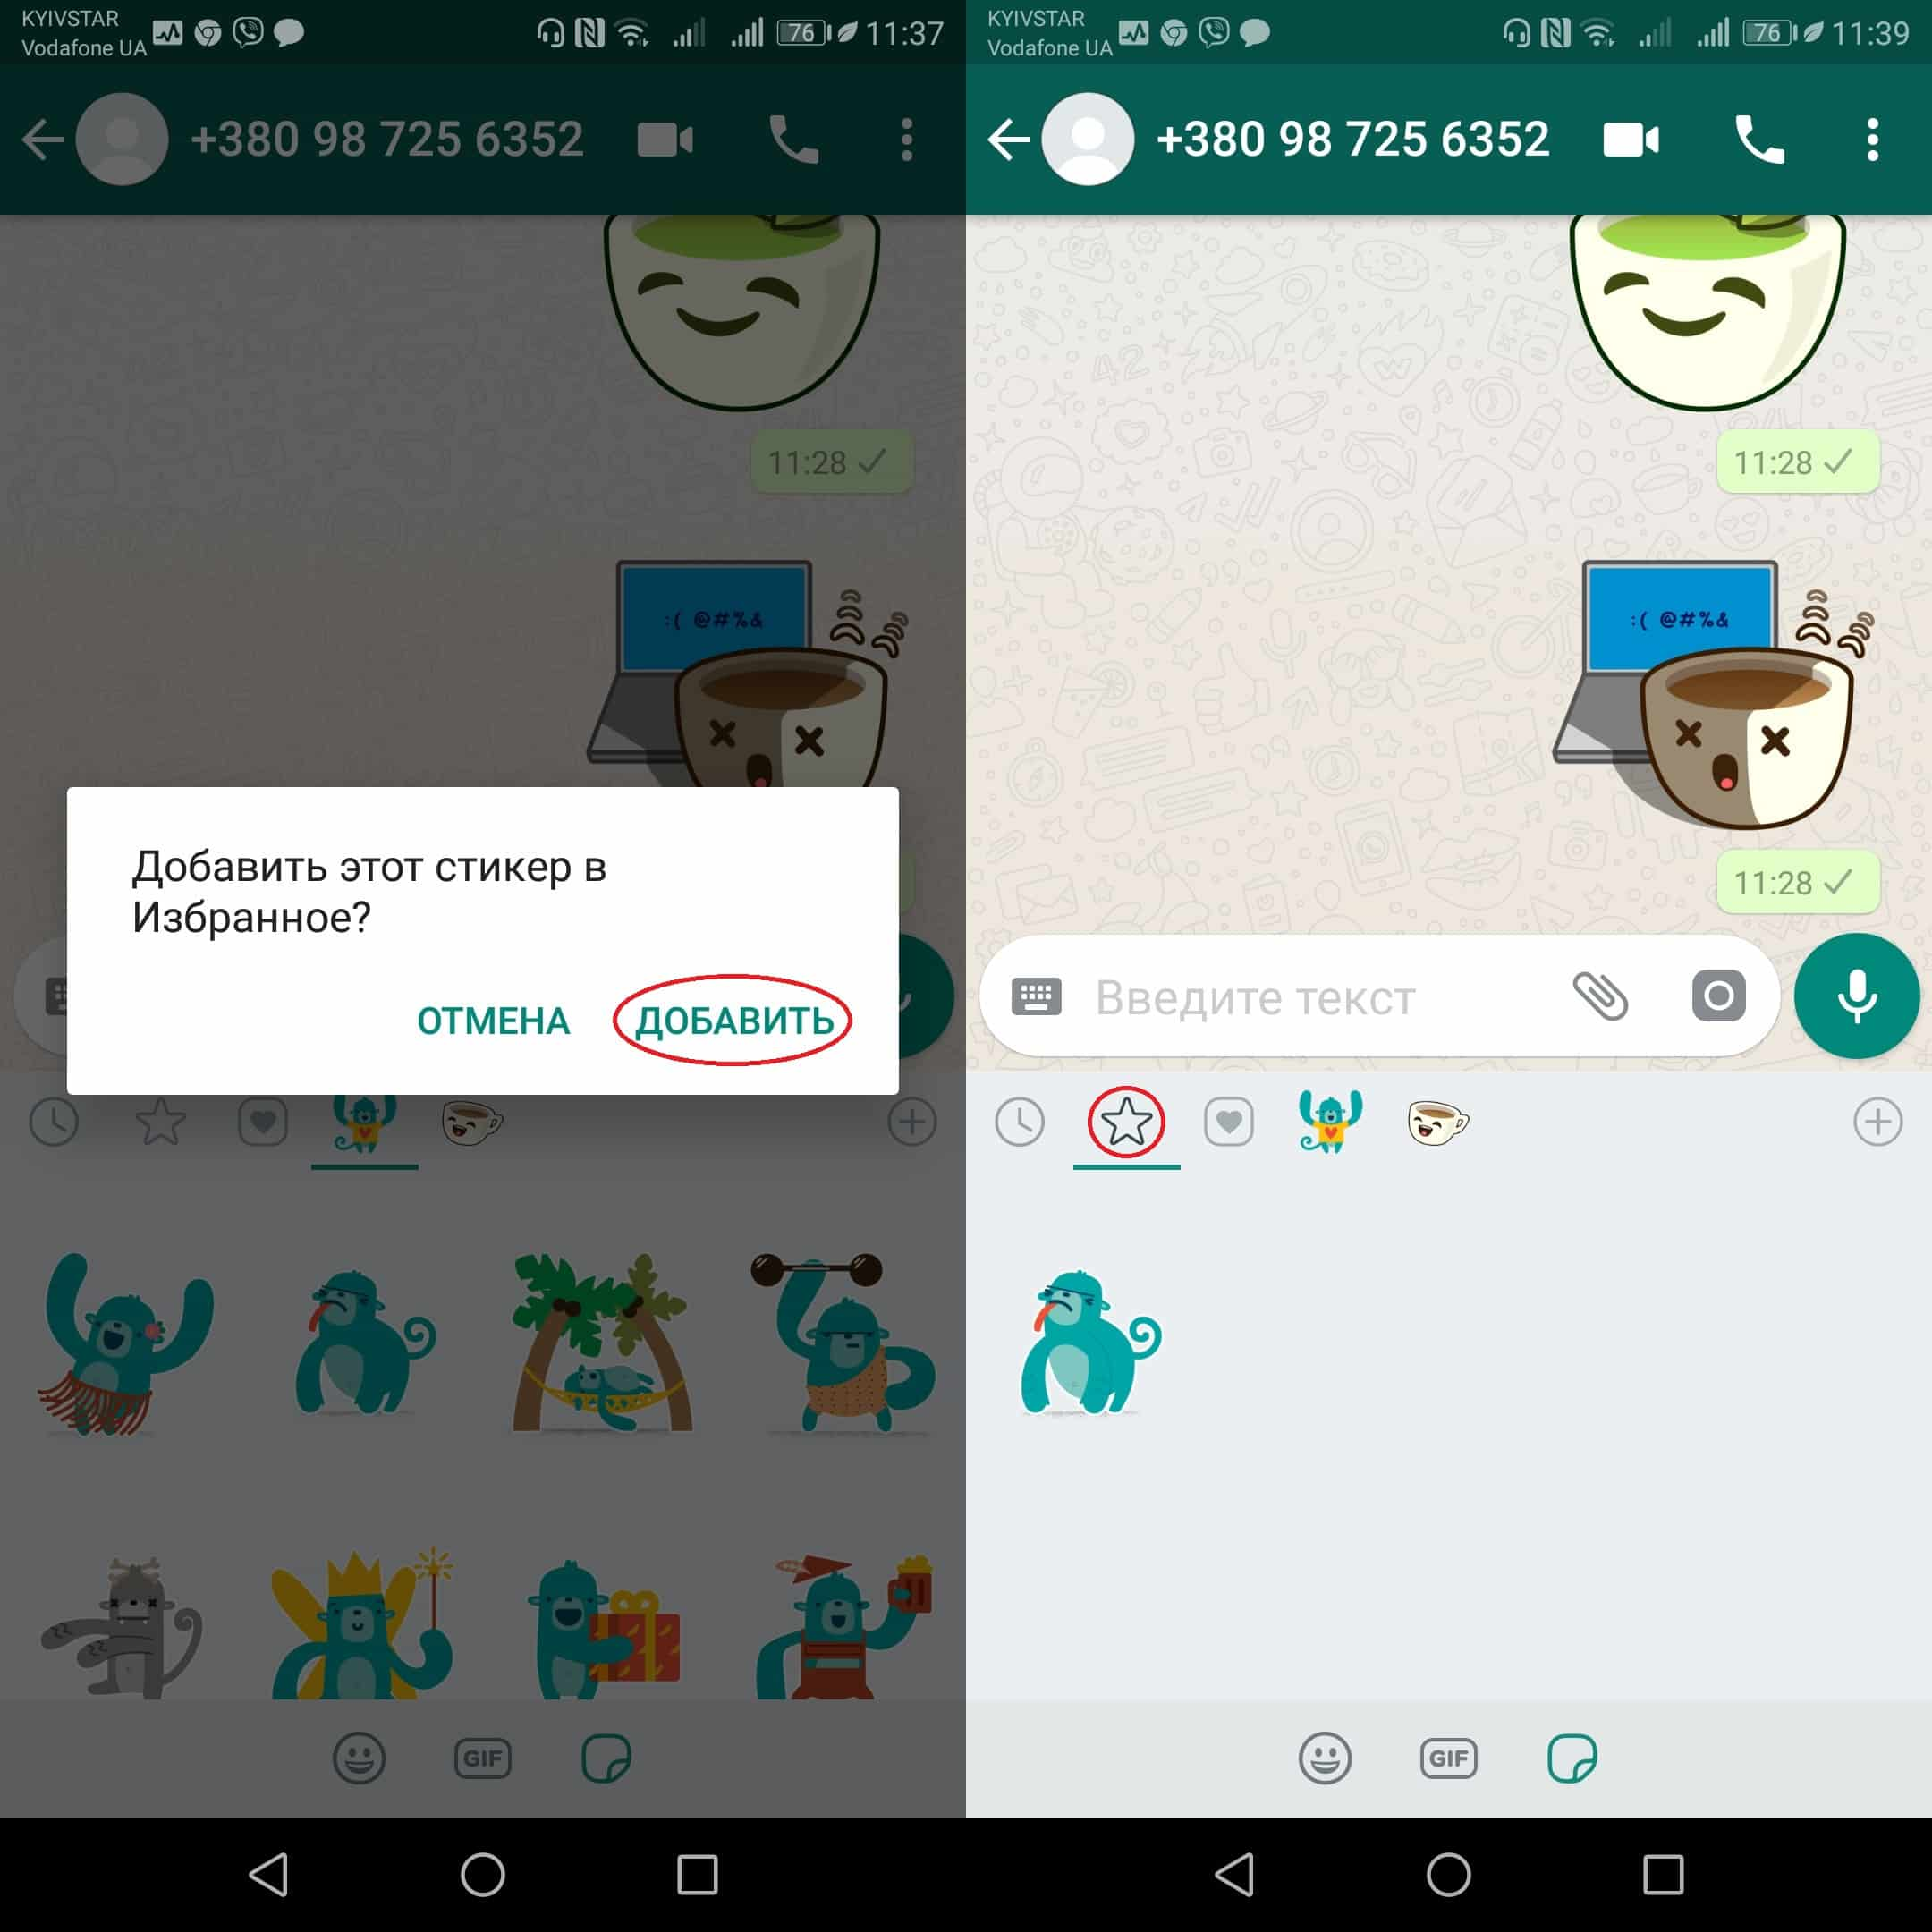 Картинка 3 В WhatsApp появились стикеры! Спешите узнать, как ими пользоваться!